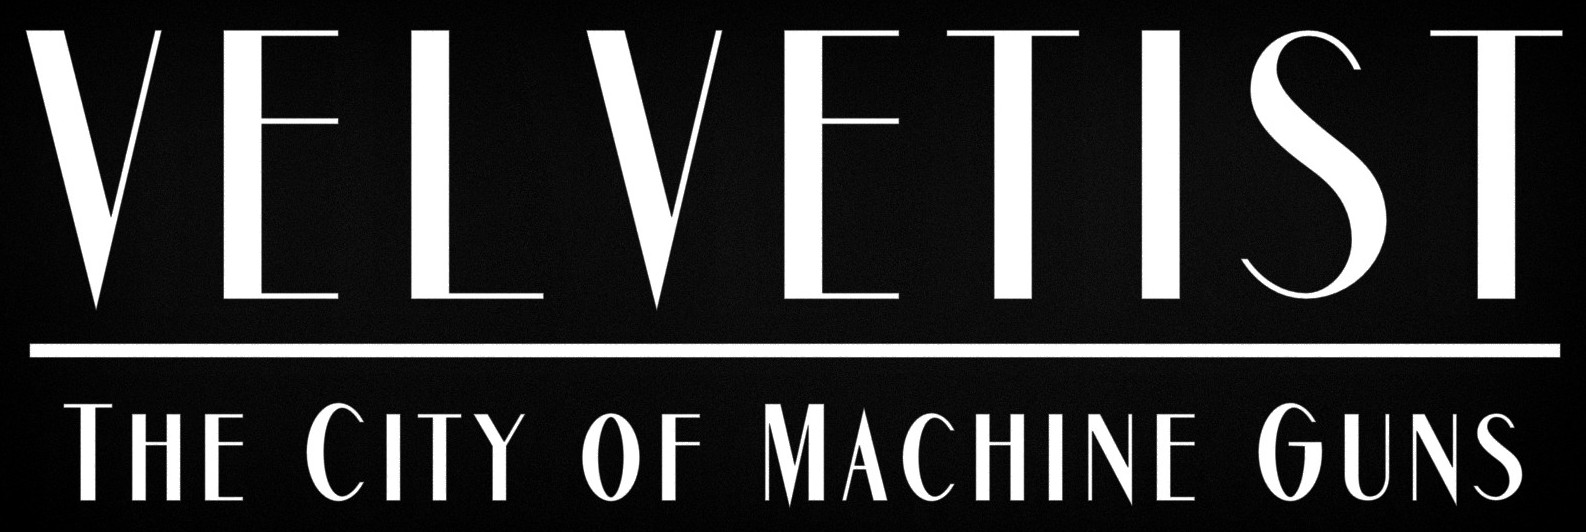 Velvetist:The City of Machine Guns